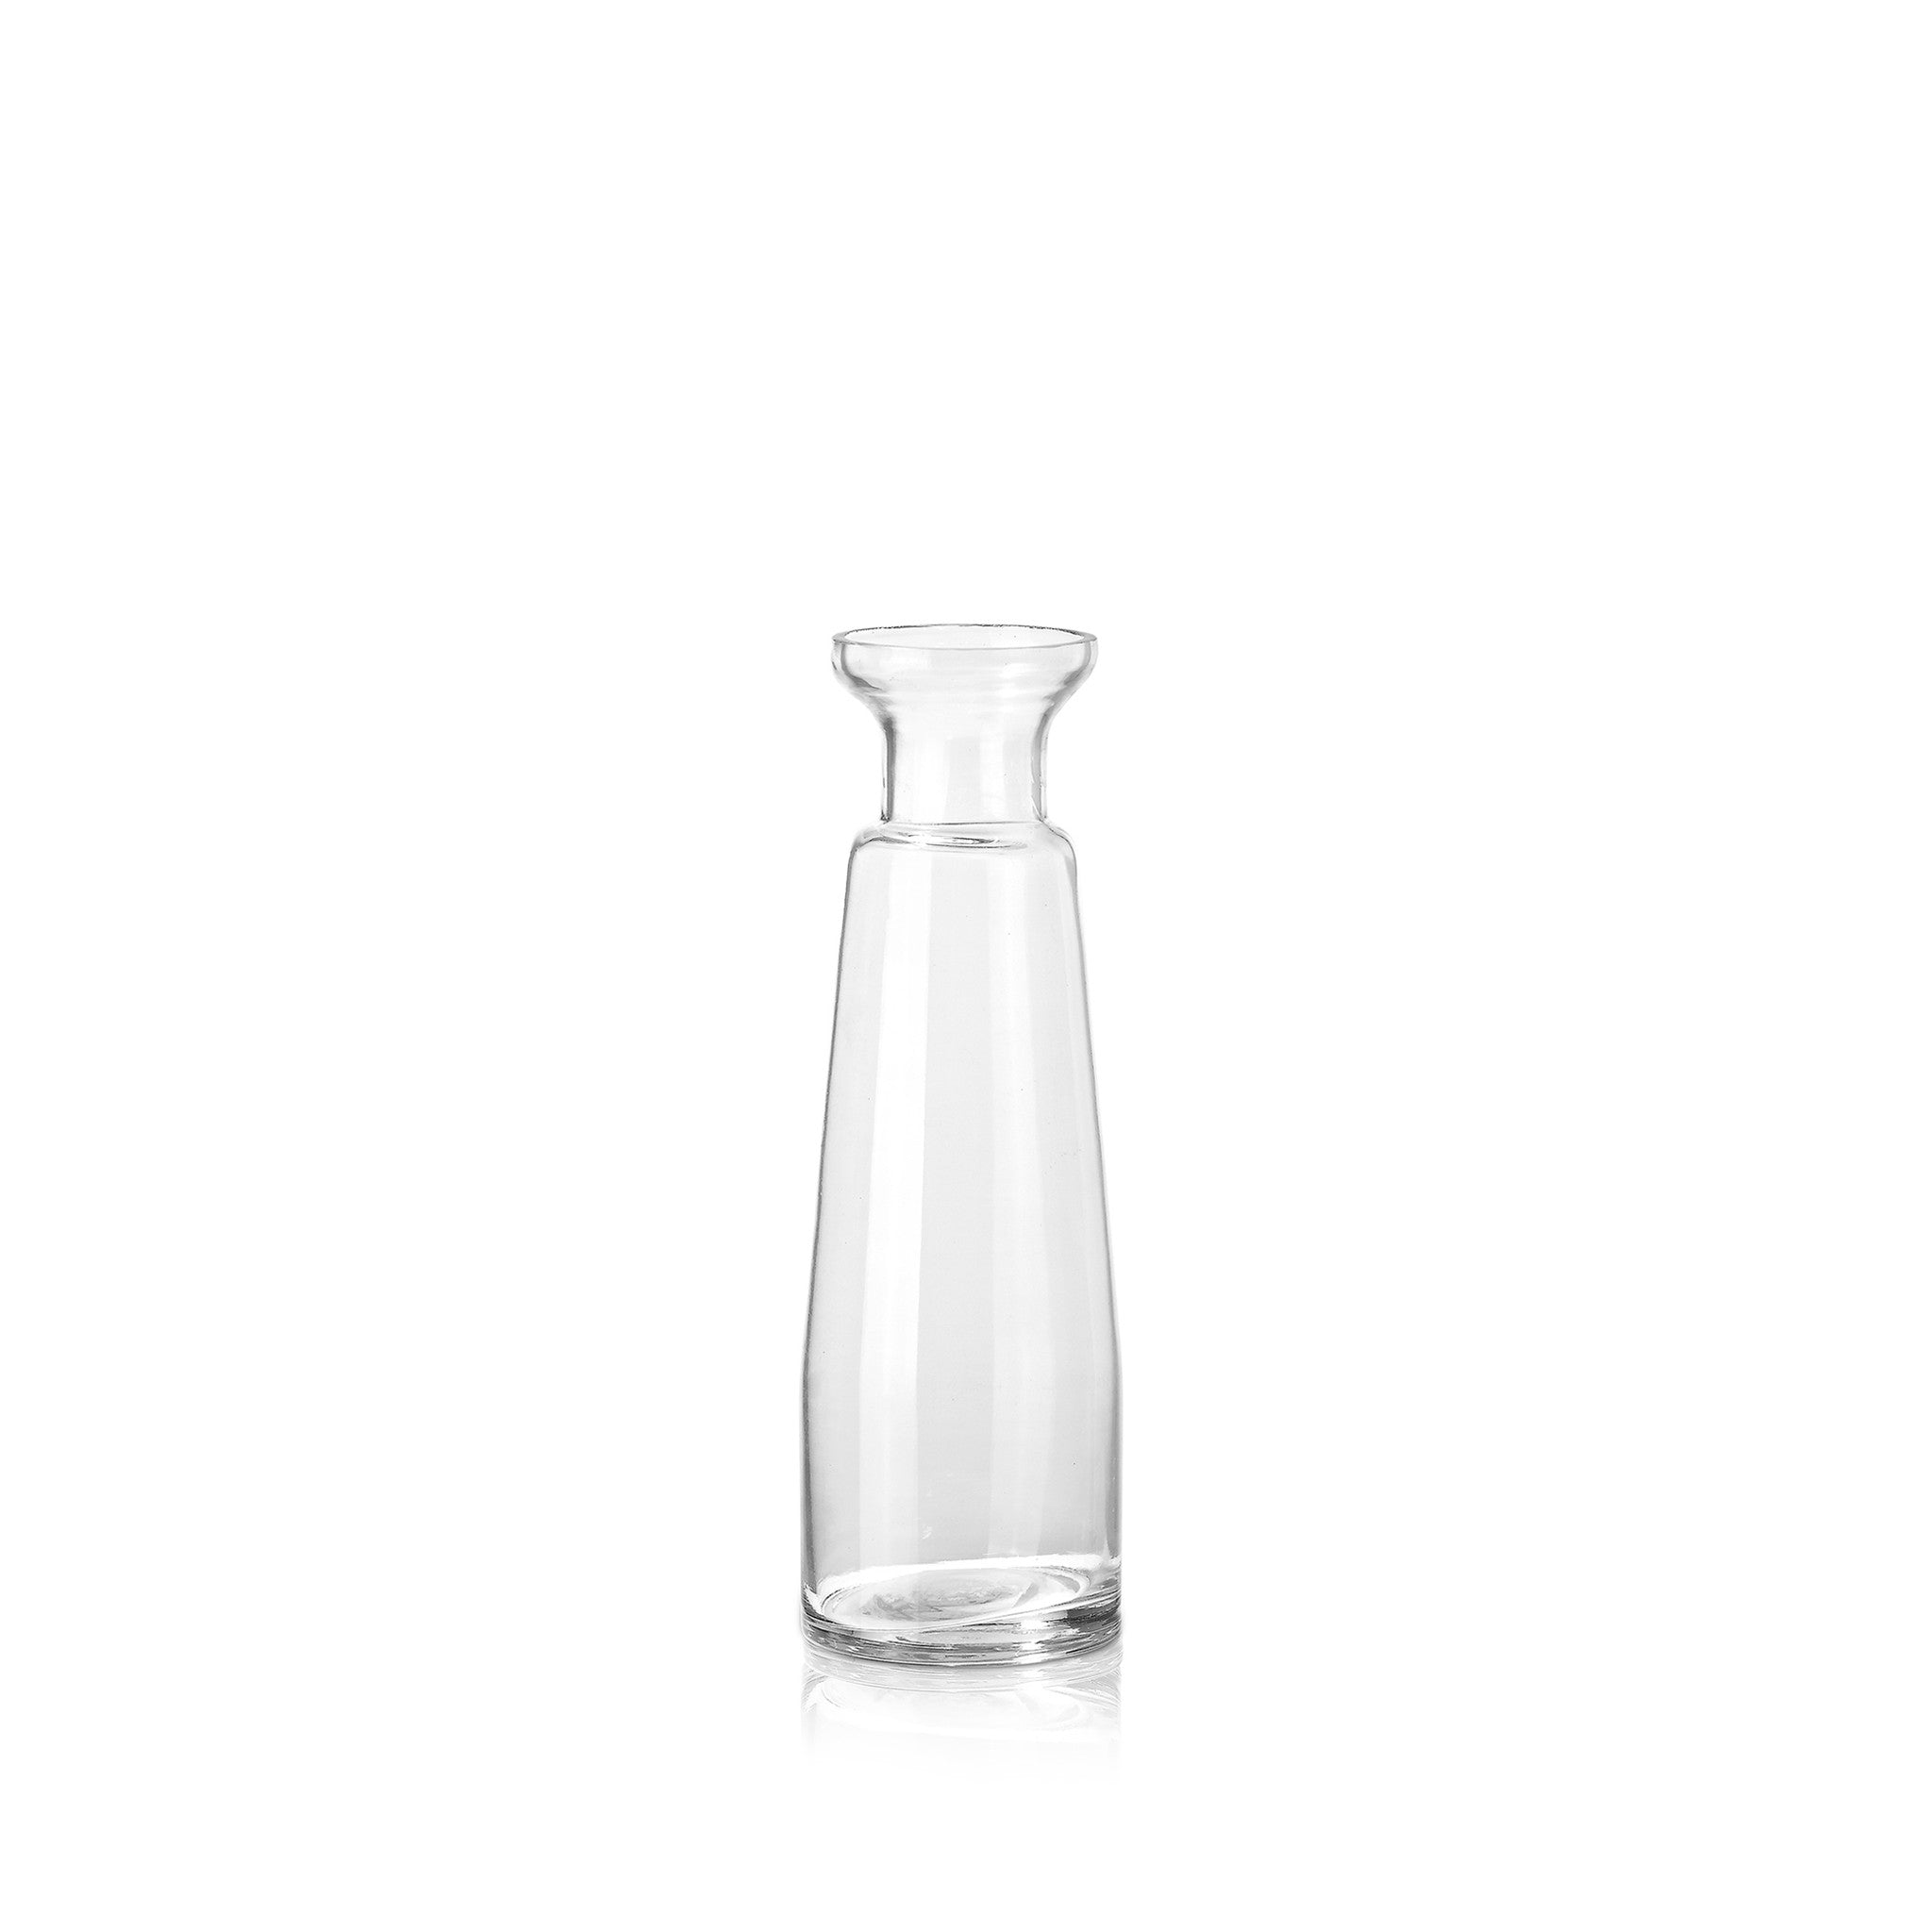 Glass Flower Vase - Lori